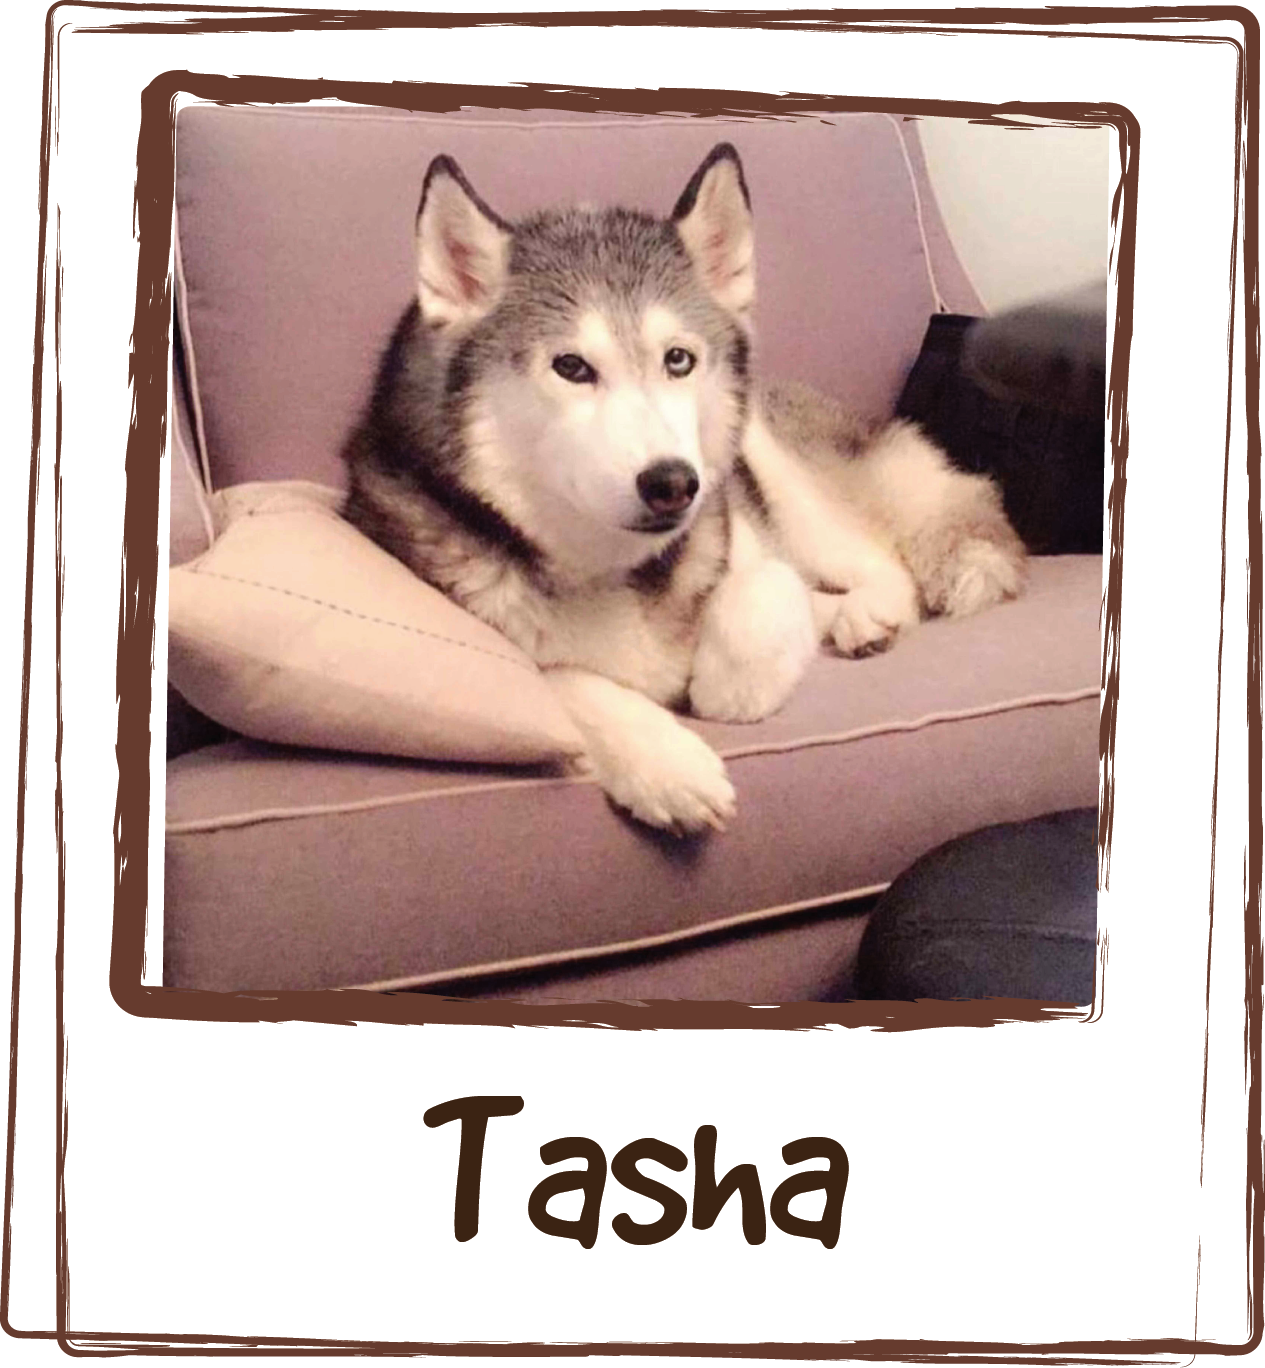 """""""This is miss Tasha. She does not care for thunderstorms or fireworks AT ALL. She has been known to keep us up all hours of the night, panting, pawing, clawing, jumping on top of the bed and trying to hide from the scary sounds by curling up next to us and being held tightly. Then, I discovered LICKS Pill-Free Zen packs. One sniff and she comes running! When we know it's going to storm or if there's a holiday with fireworks, we give baby girl a Zen pack and within 20-30 min, she is calm, not doped up like she would be with an anti anxiety medicine that would normally be prescribed. She is just zen and she hardly notices the scary noises. I love that this product is natural. It's important to me to give the best quality ingredients to our family, human and fur. We always have a stock of Zen packs on hand. Thank you for making such a wonderful solution for my girl's storm anxiety. Now Tasha, husky brother Bru, and Mom & dad can sleep peacefully. 😆💖"""""""